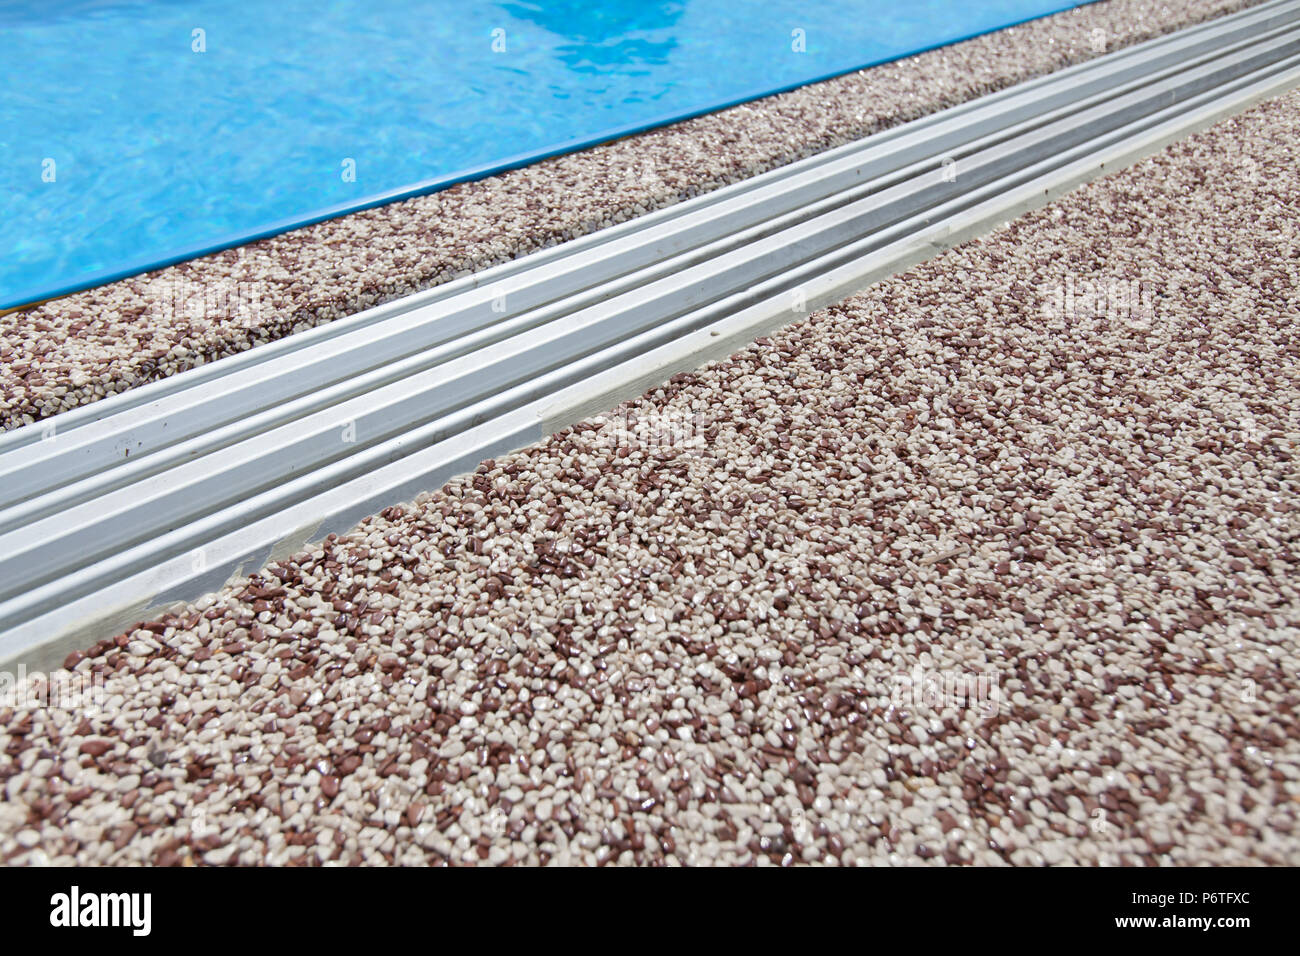 Texture Of Pebbles In An Exposed Aggregate Foundation   Stock Image